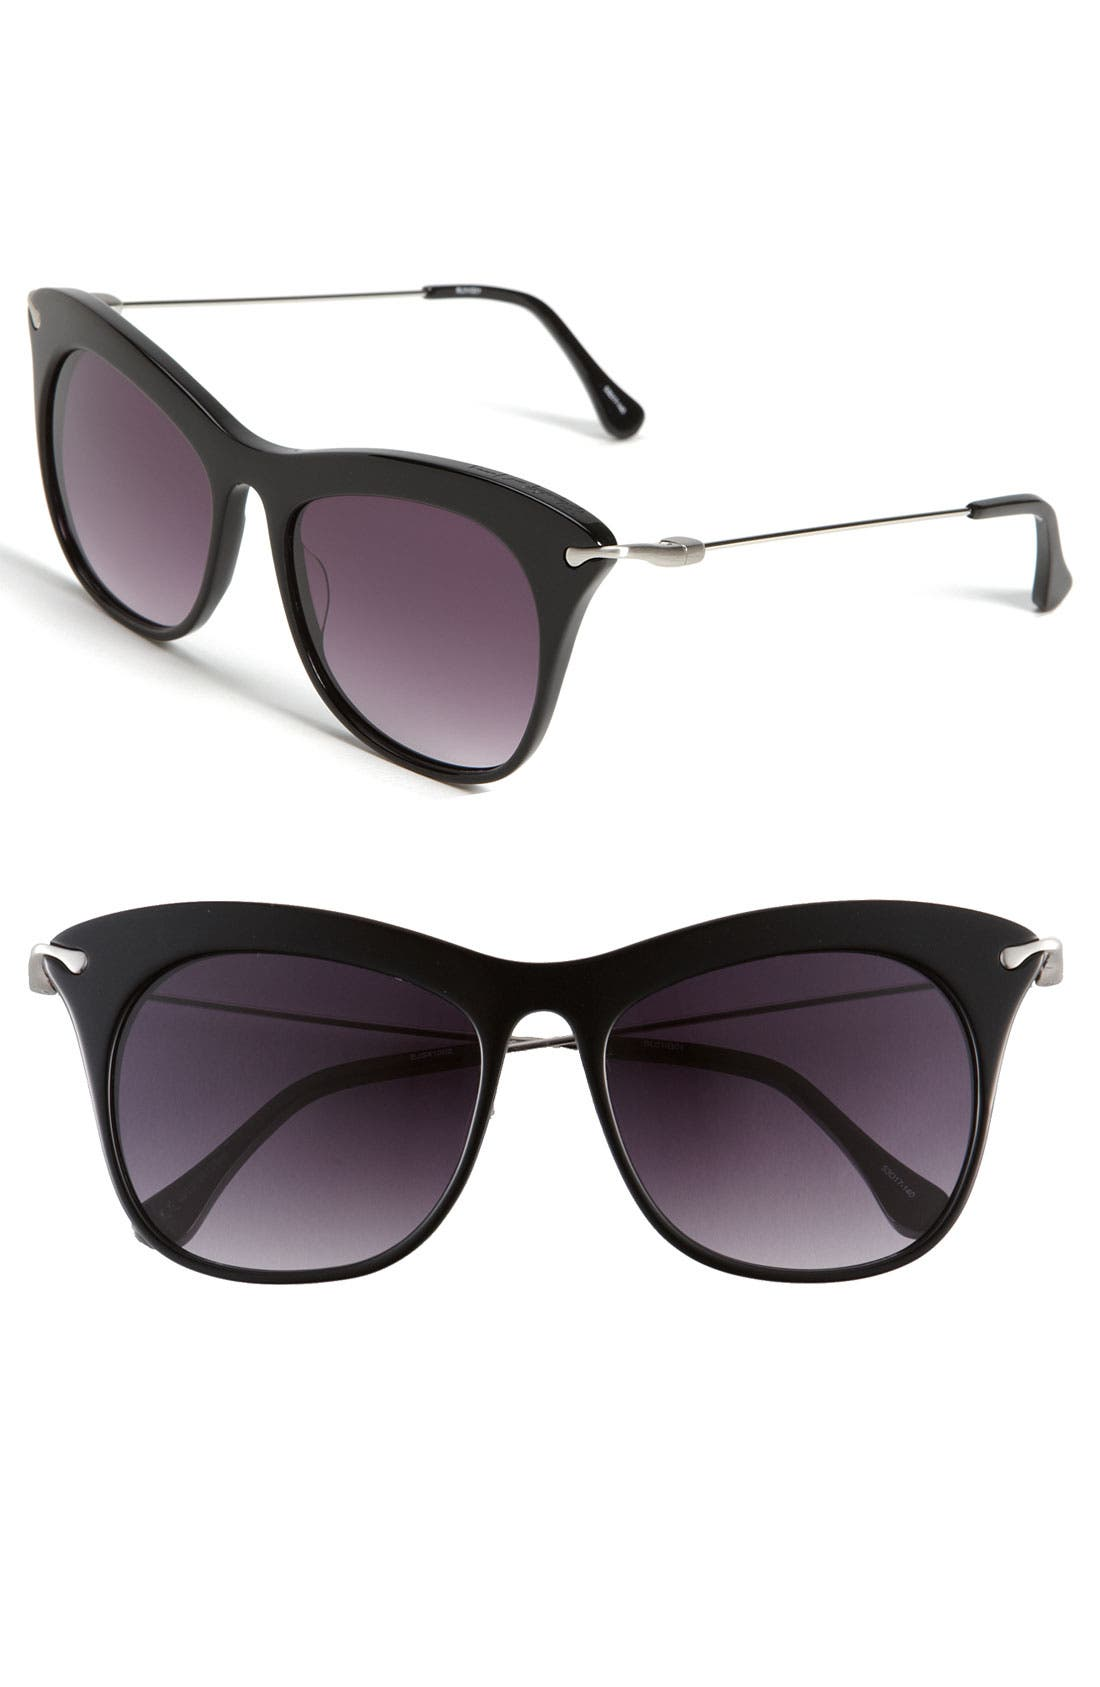 ELIZABETH AND JAMES,                             'Fairfax' 53mm Sunglasses,                             Main thumbnail 1, color,                             001